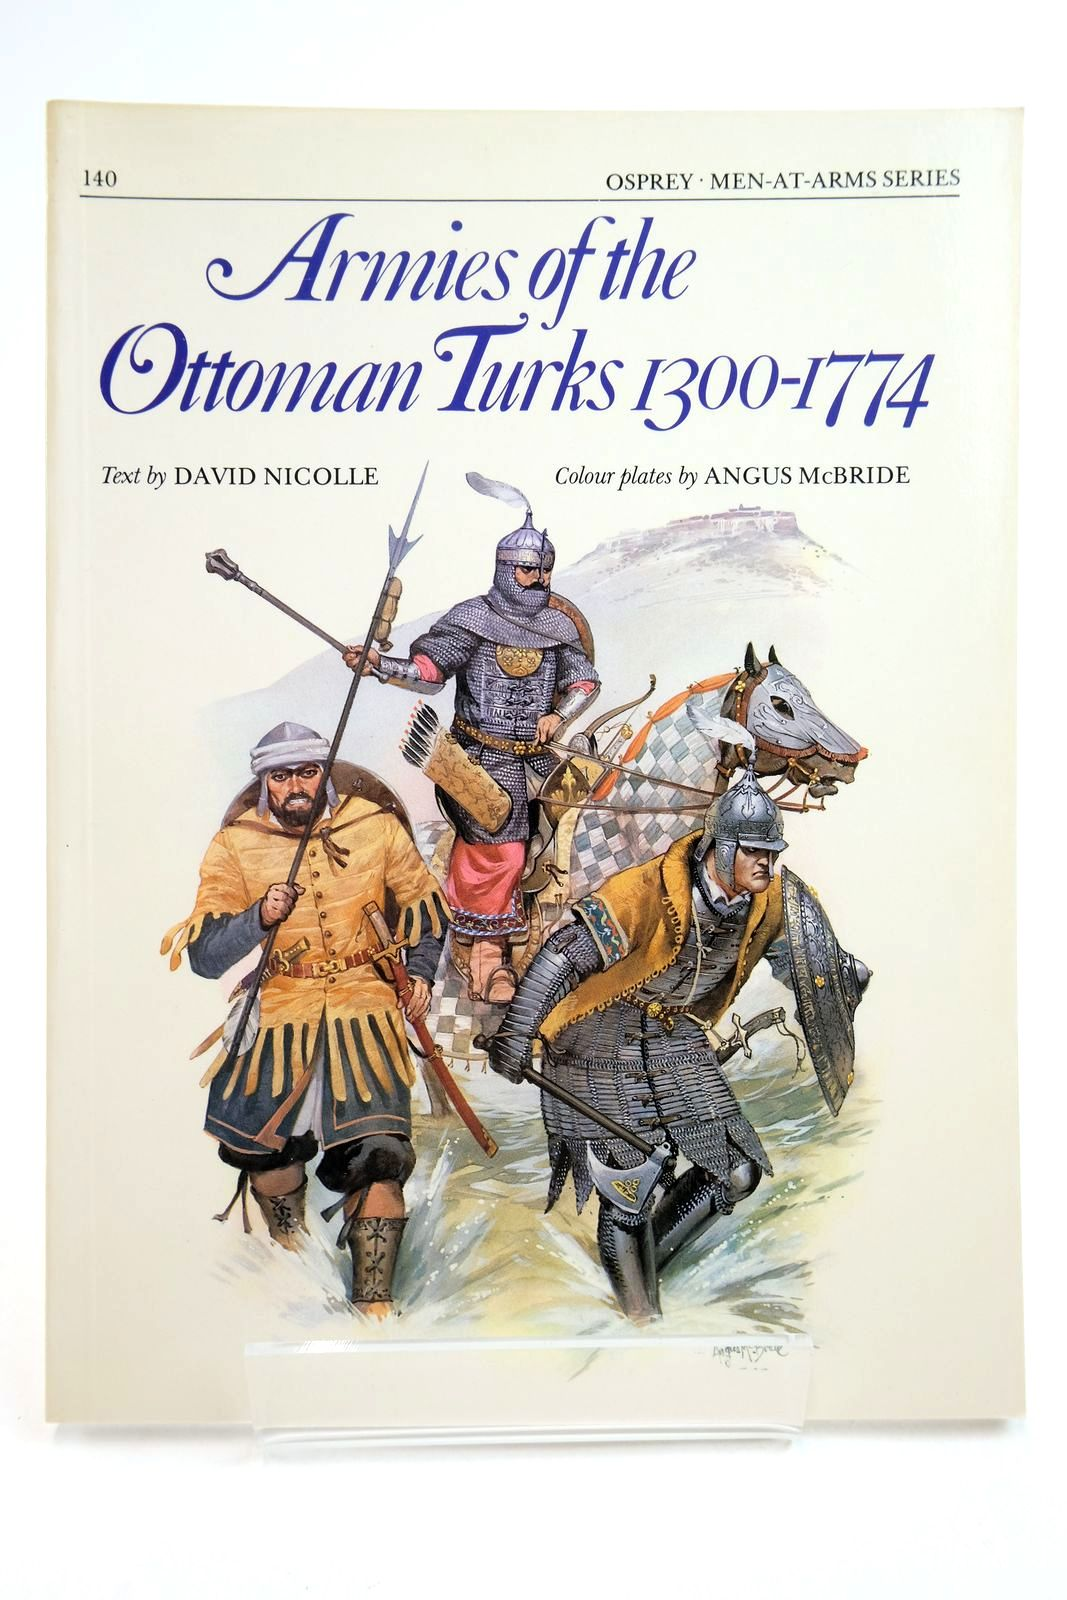 Photo of ARMIES OF THE OTTOMAN TURKS 1300-1774 (MEN-AT-ARMS) written by Nicolle, David illustrated by McBride, Angus published by Osprey Publishing (STOCK CODE: 2134742)  for sale by Stella & Rose's Books